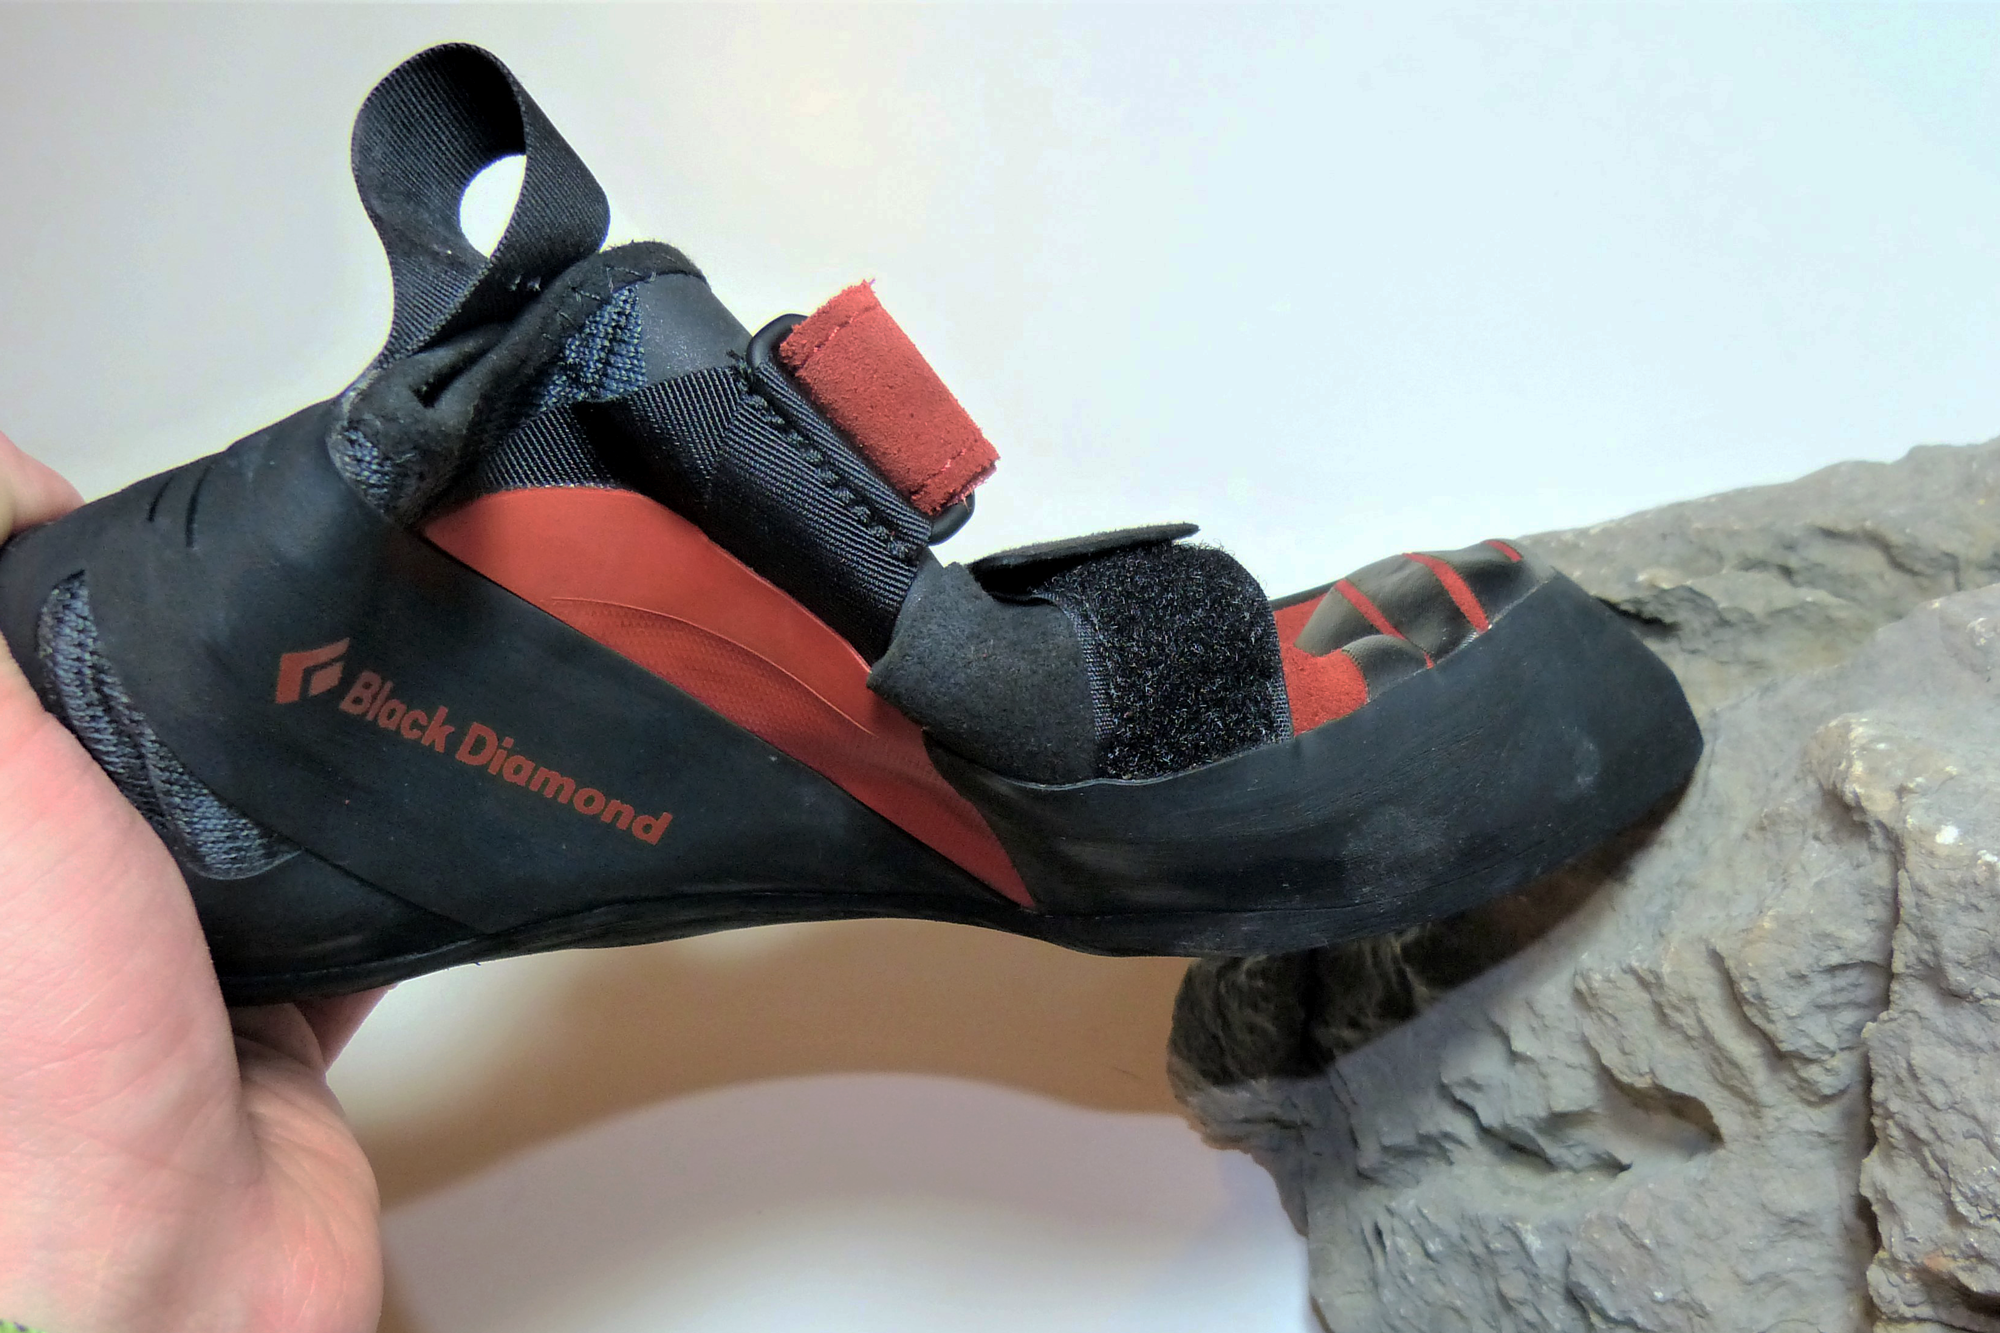 Black Diamond Solution Klettergurt Test : Black diamond modelle u efocusu c und emomentumu im vergleichs test